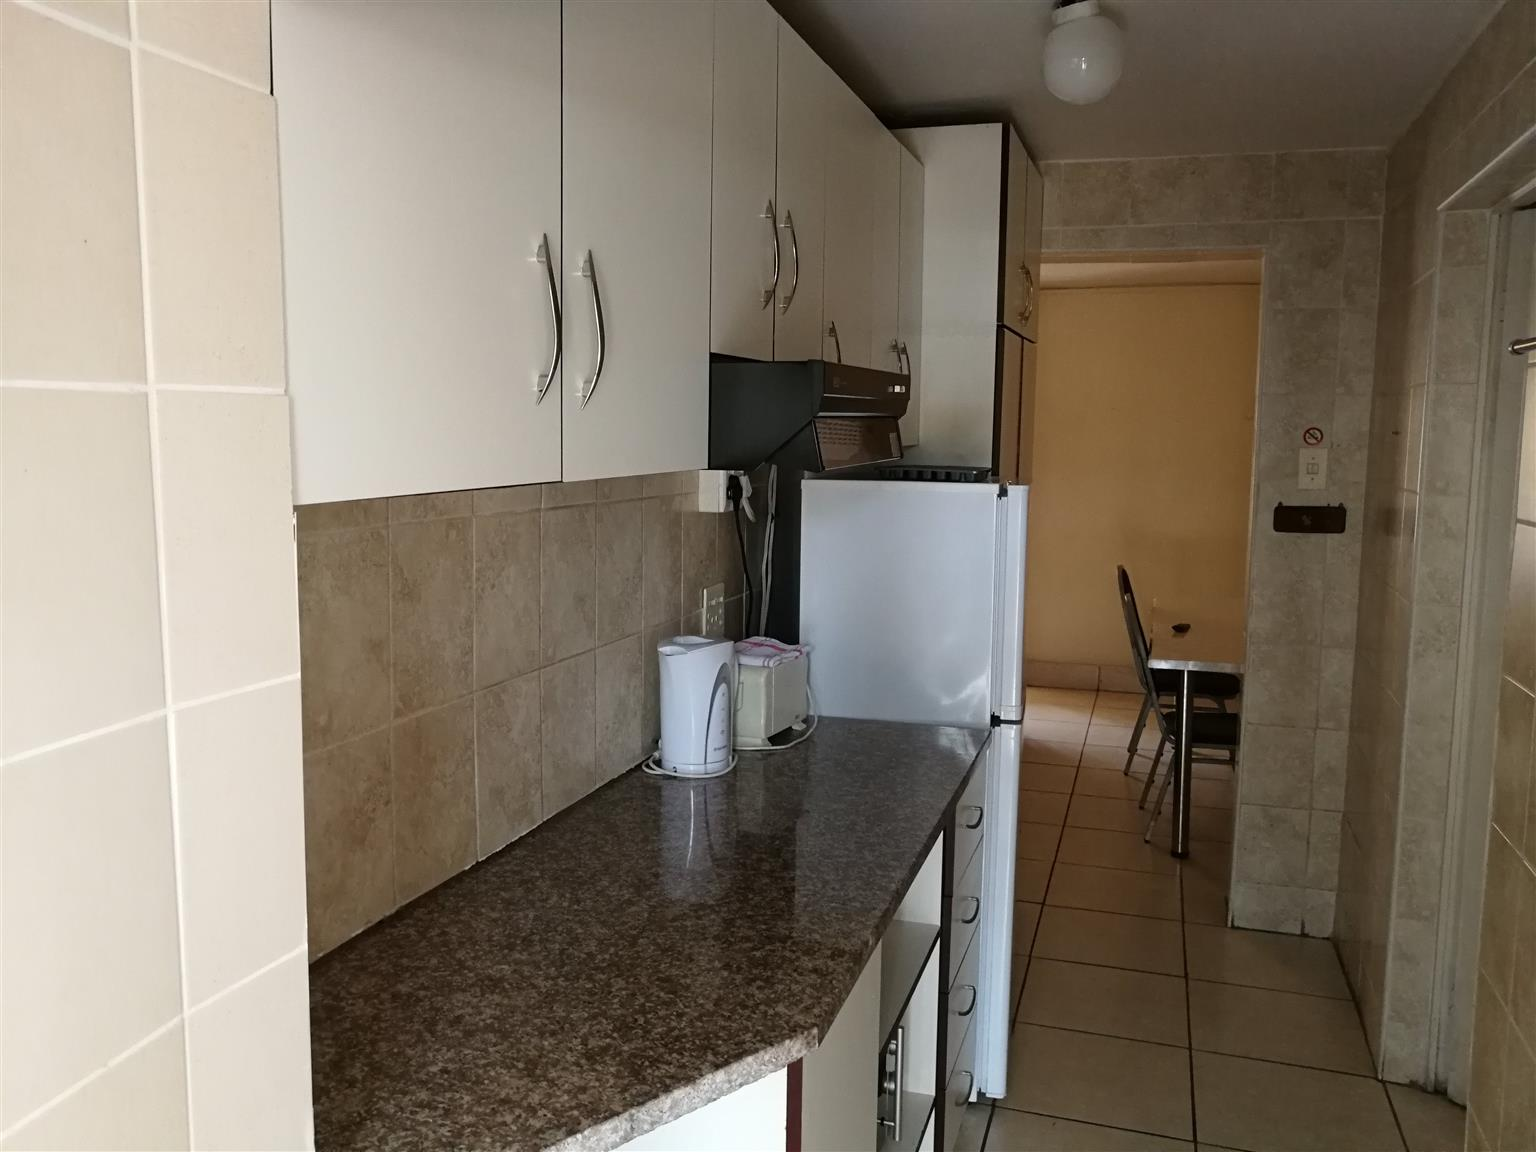 Durban Accommodation - December 2019 - Jan 2020 from R800.00 per couple per night